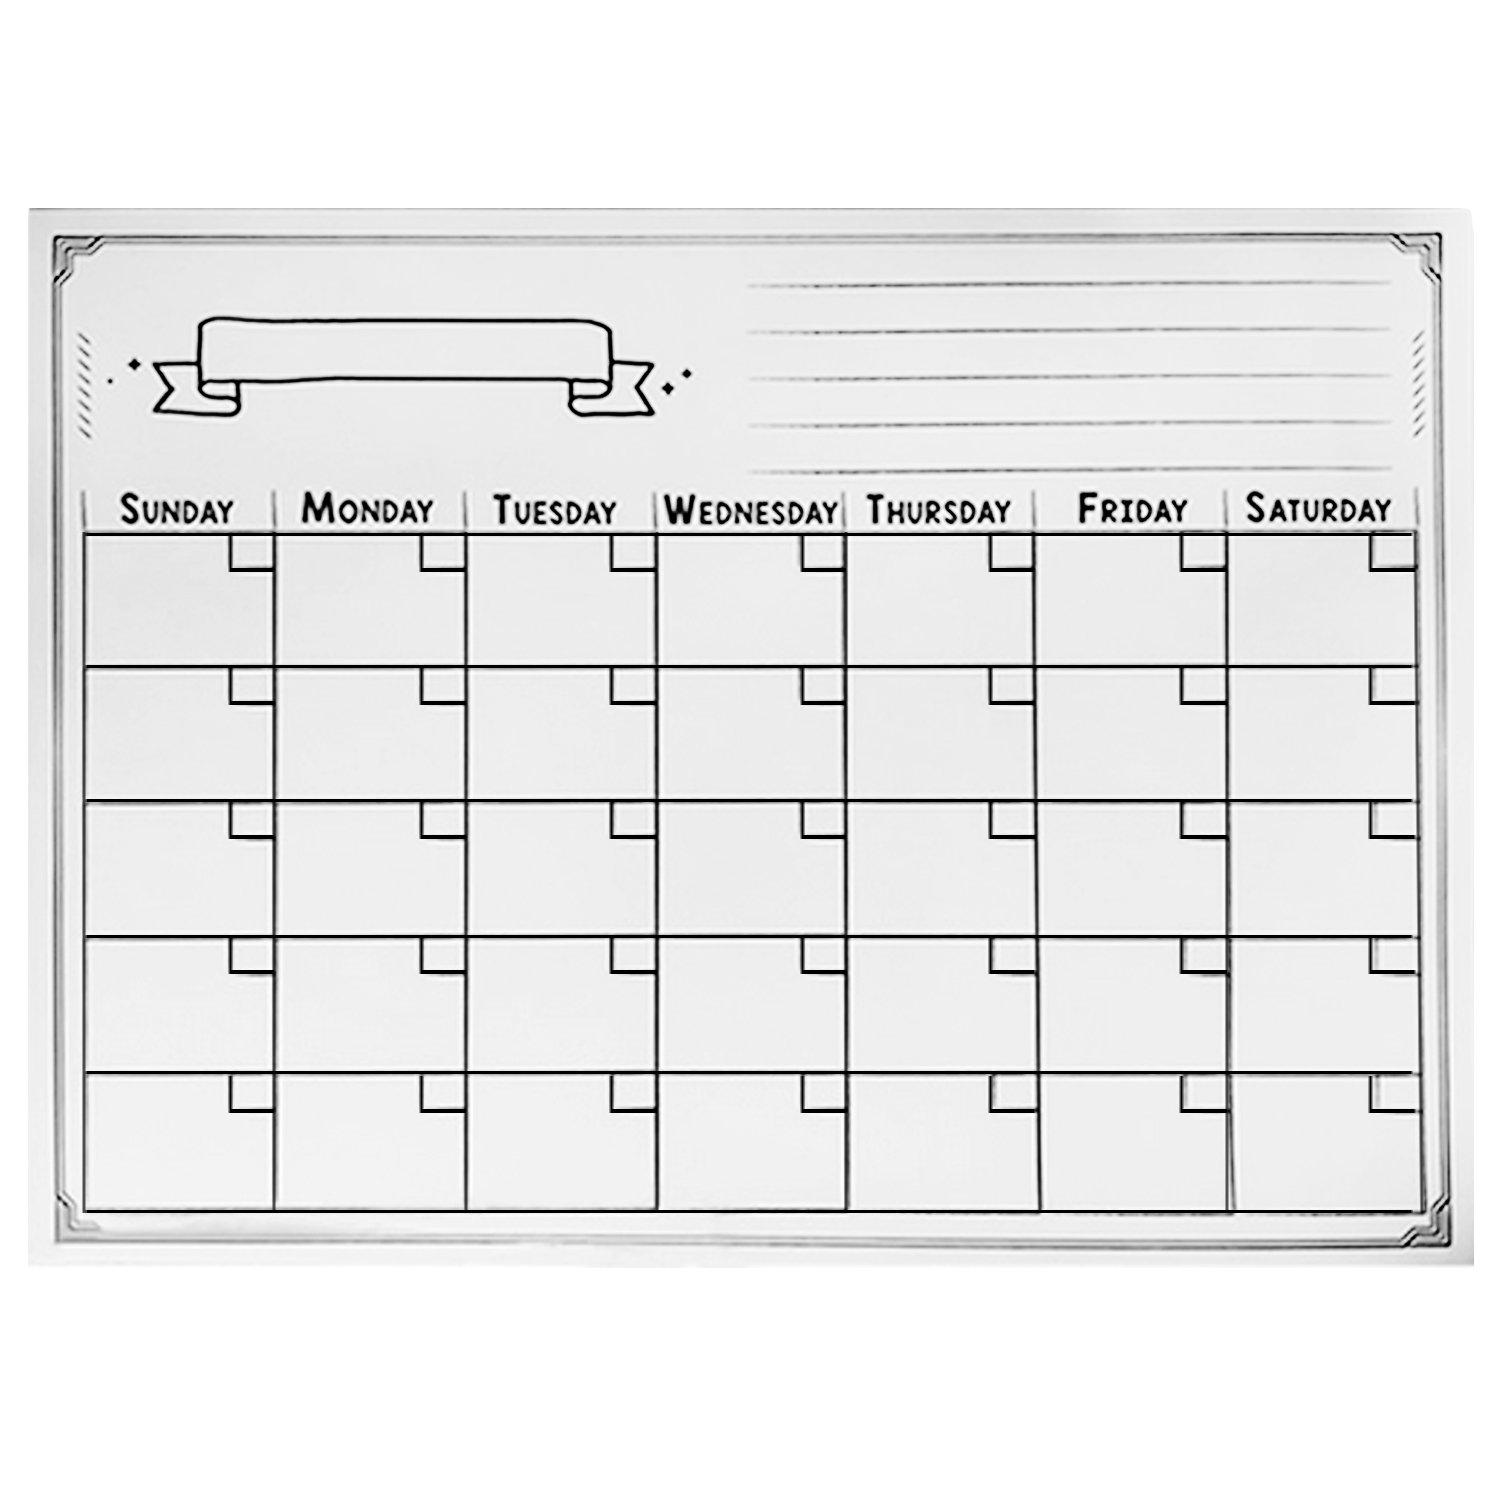 Magnetic Board for Fridge, Elisona Reusable Magnetic Dry Erase Calendar Weekly Monthly Planner Whiteboard Board for Refrigerator Home Kichen Office Fridge 40x30cm Black Elisona S